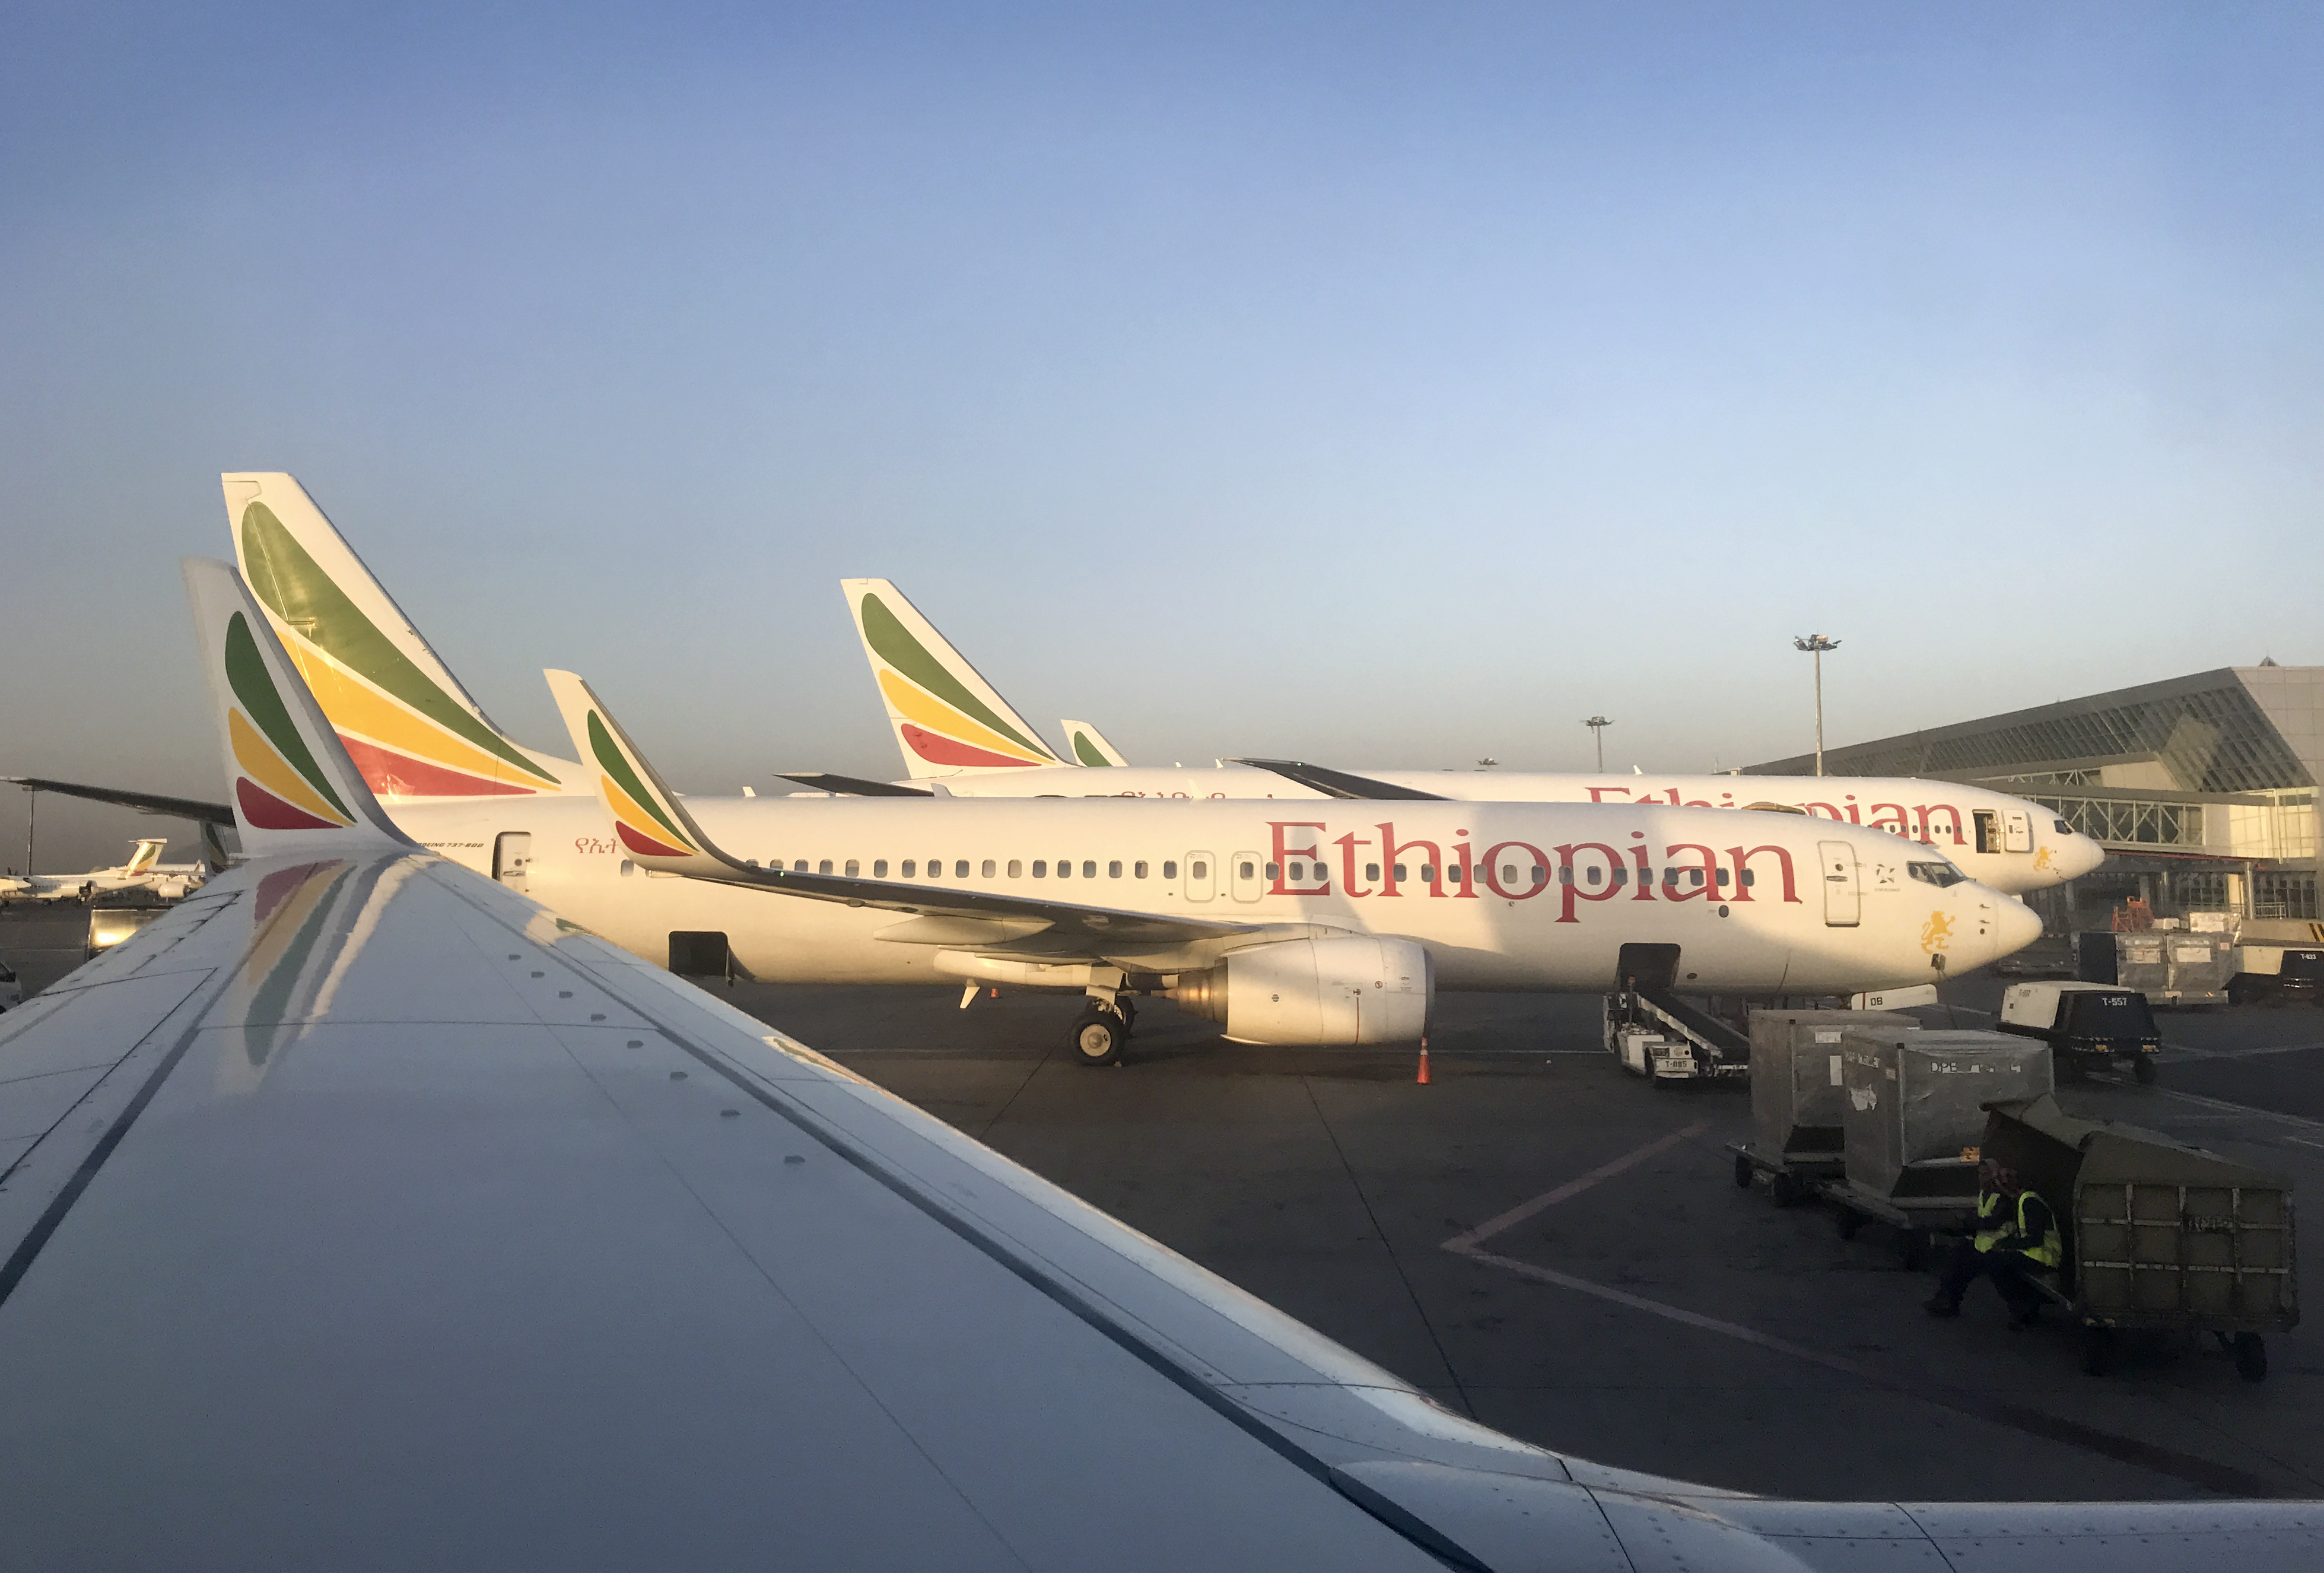 Ethiopian Airlines crash: Ethiopia, China, other countries